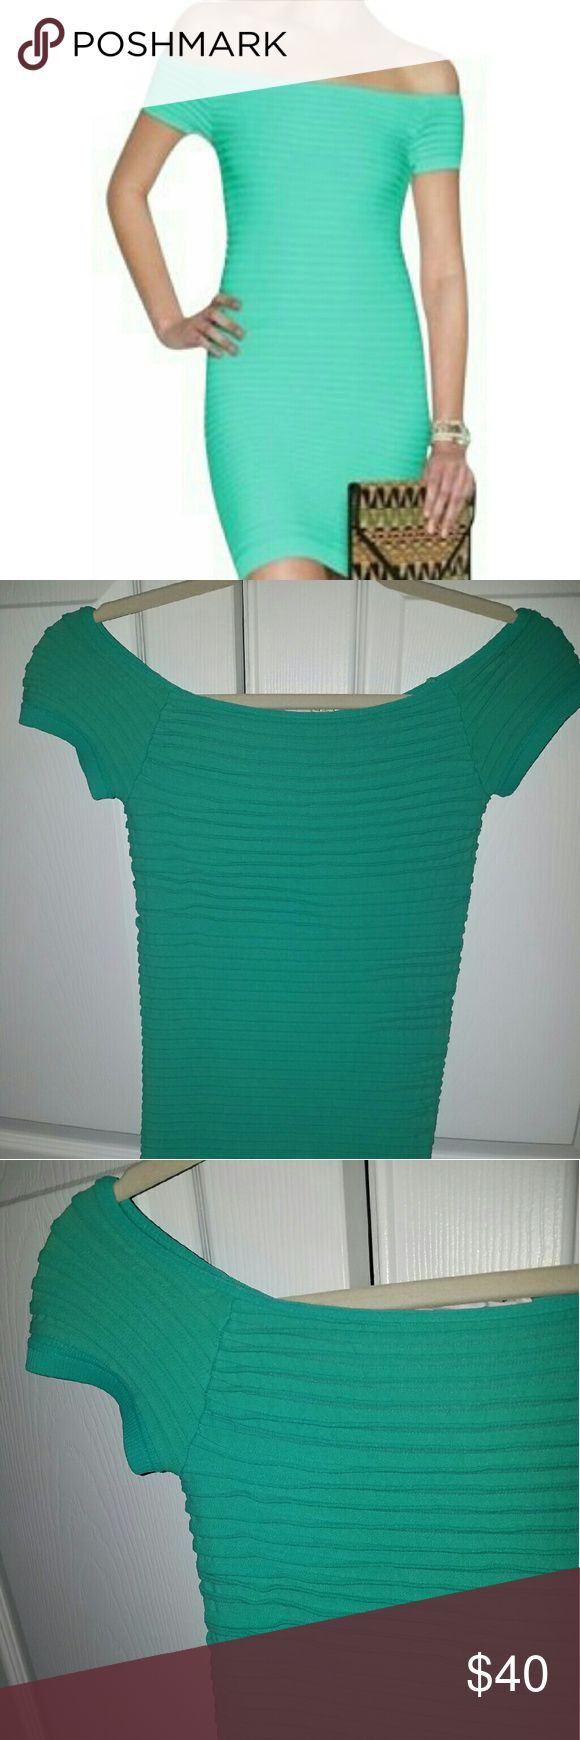 Aqua green ruffled ribbed bodycon dress Aqua green fitted bodycon dress, very flattering and perfect for a night out! Worn once, in great condition. No signs of wear BCBGeneration Dresses Mini